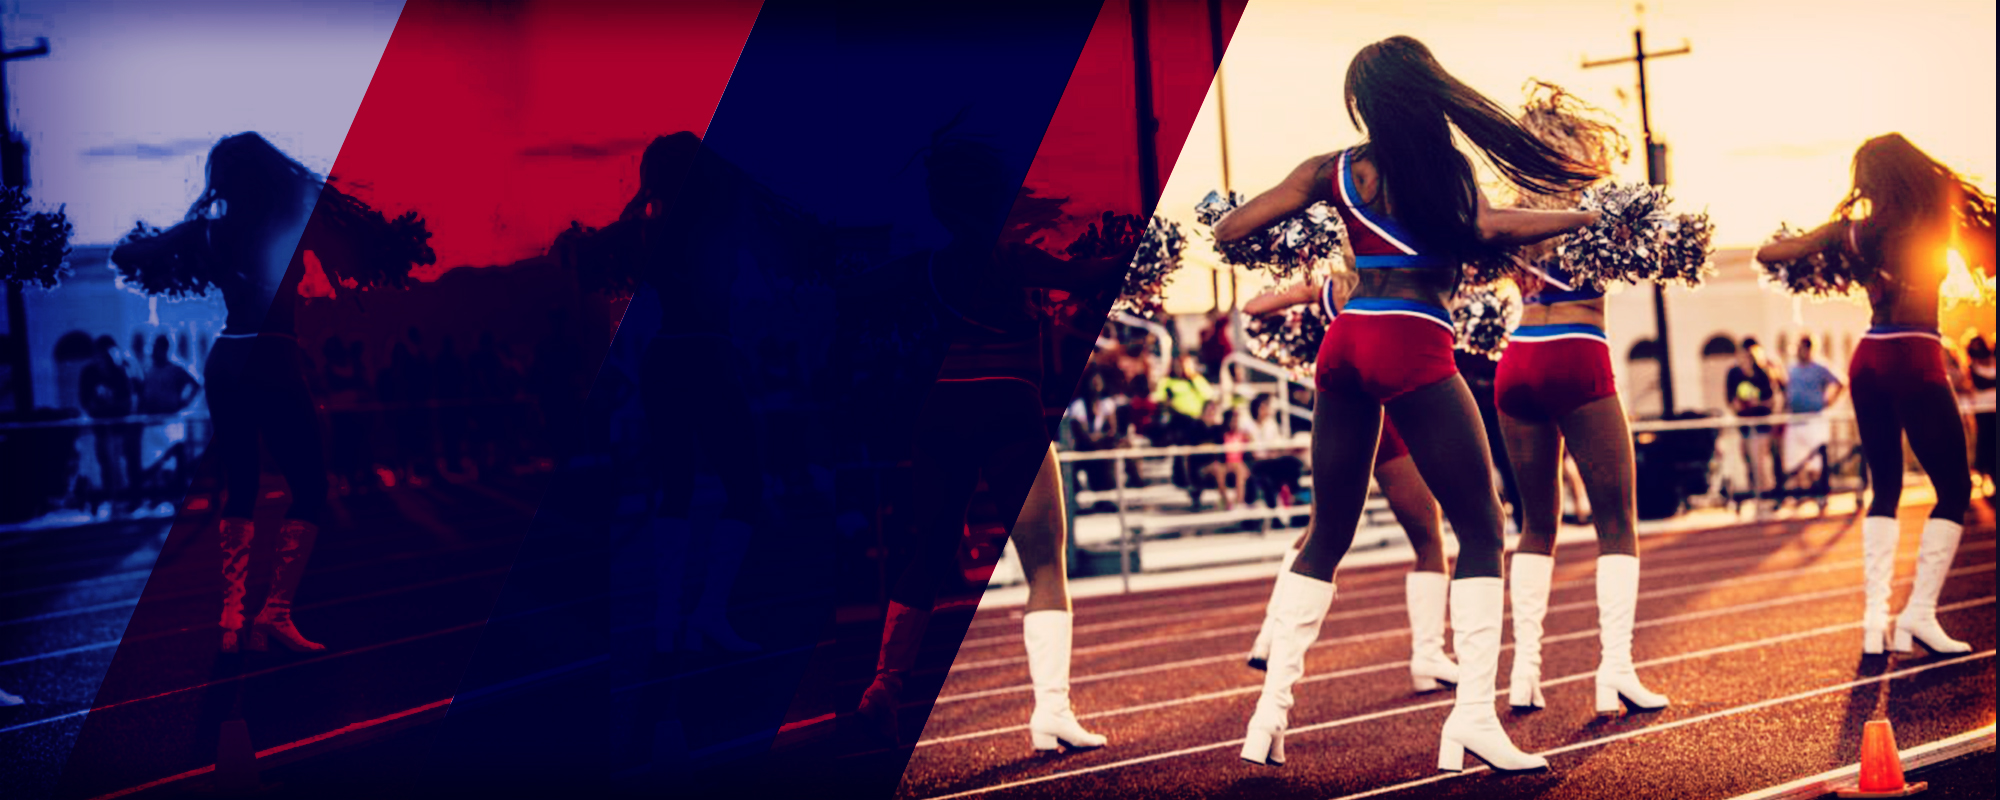 About the American Track League